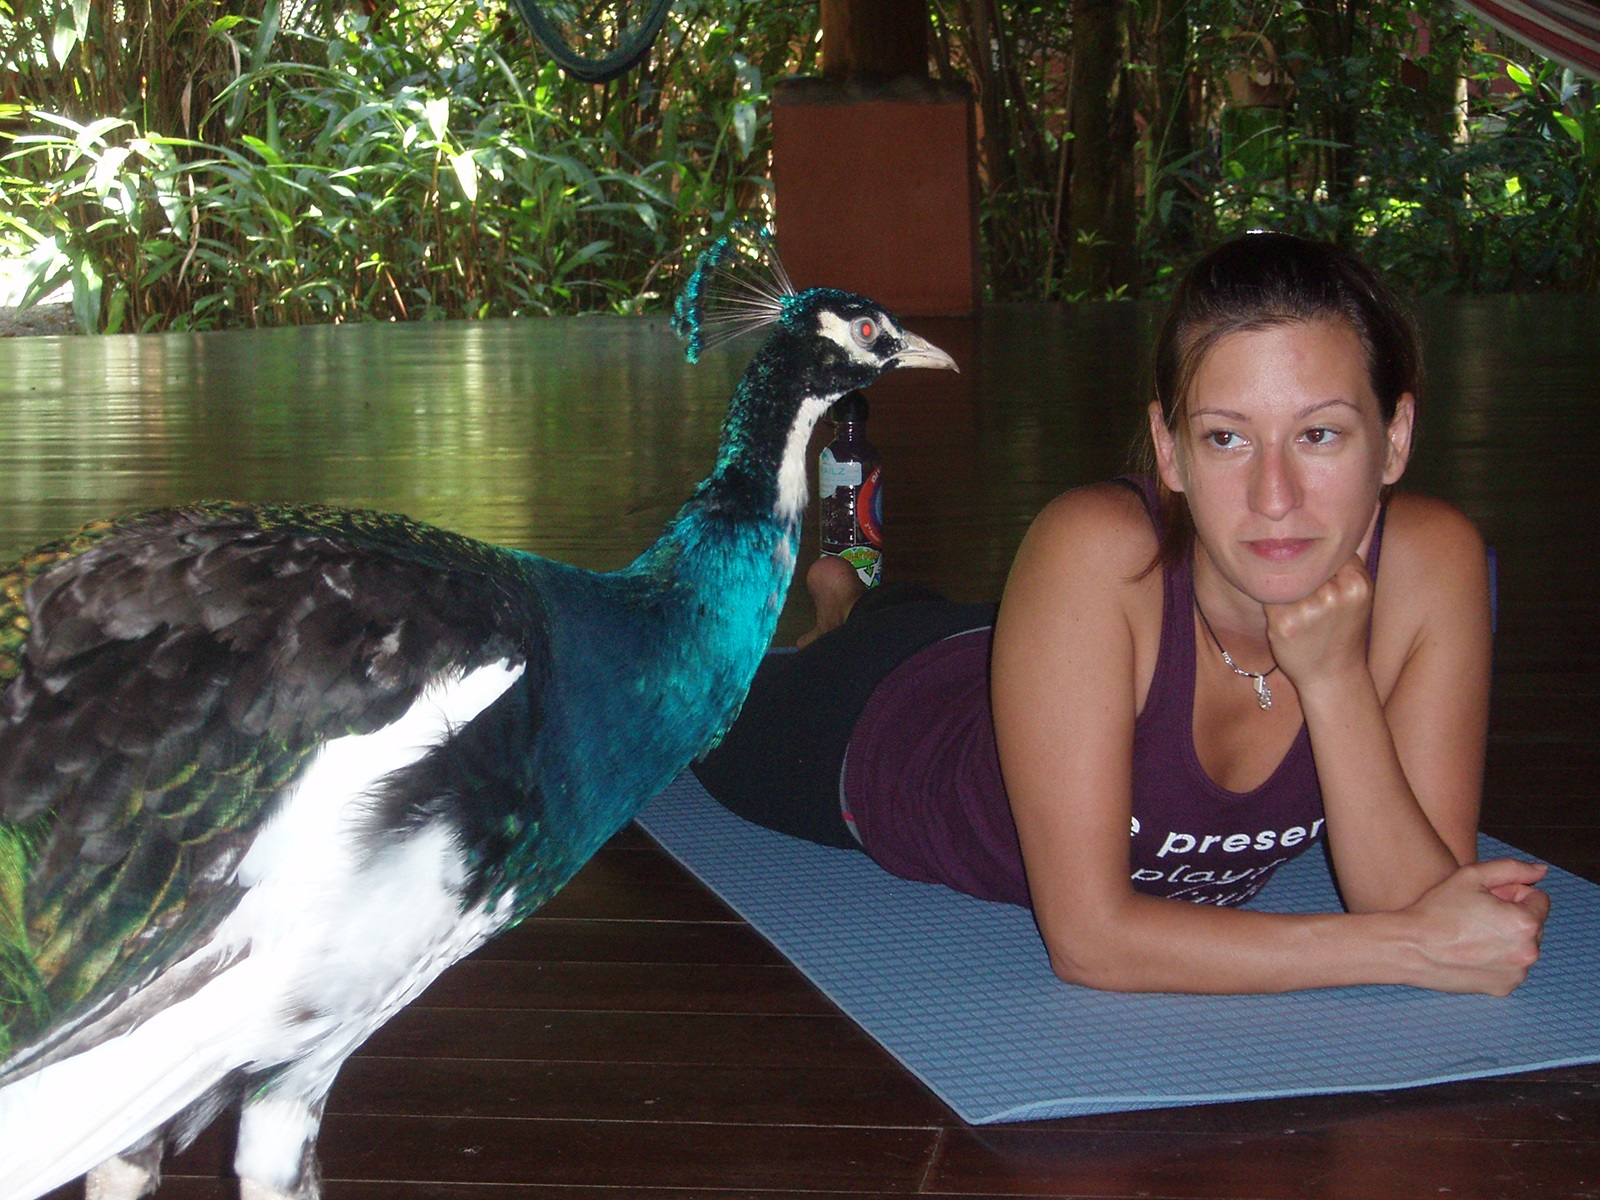 A peacock looking to join me on my mat for some yoga in Costa Rica, 2012